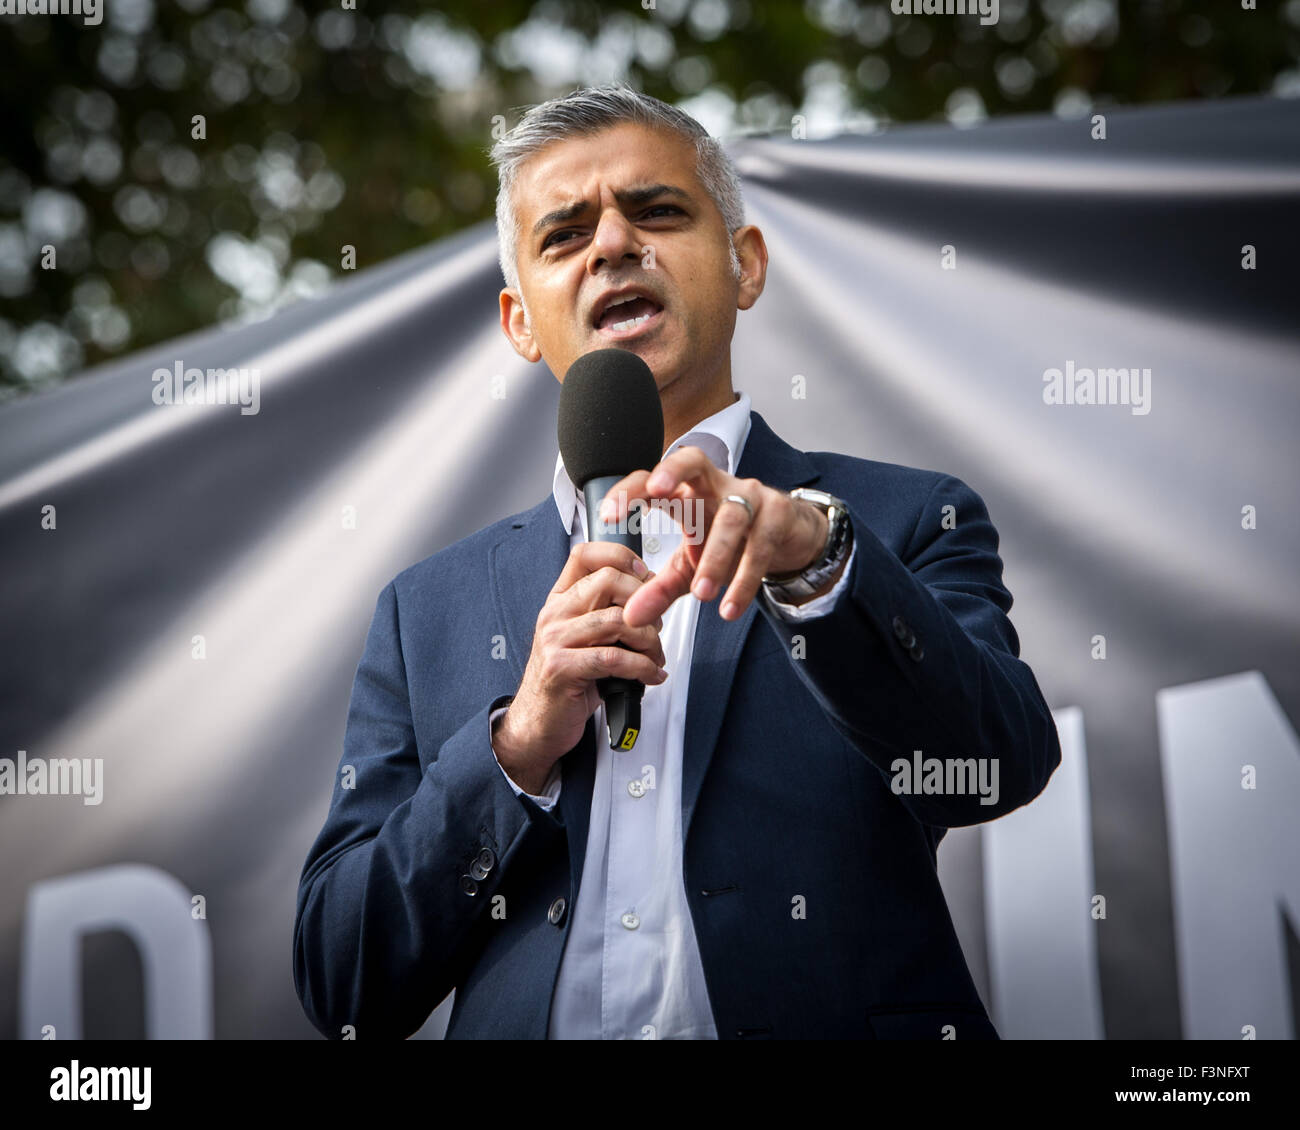 London, UK. 10 October, 2015. Sadiq Khan, Mayoral Candidate speaks during the No Third Runway at Heathrow protest - Stock Image